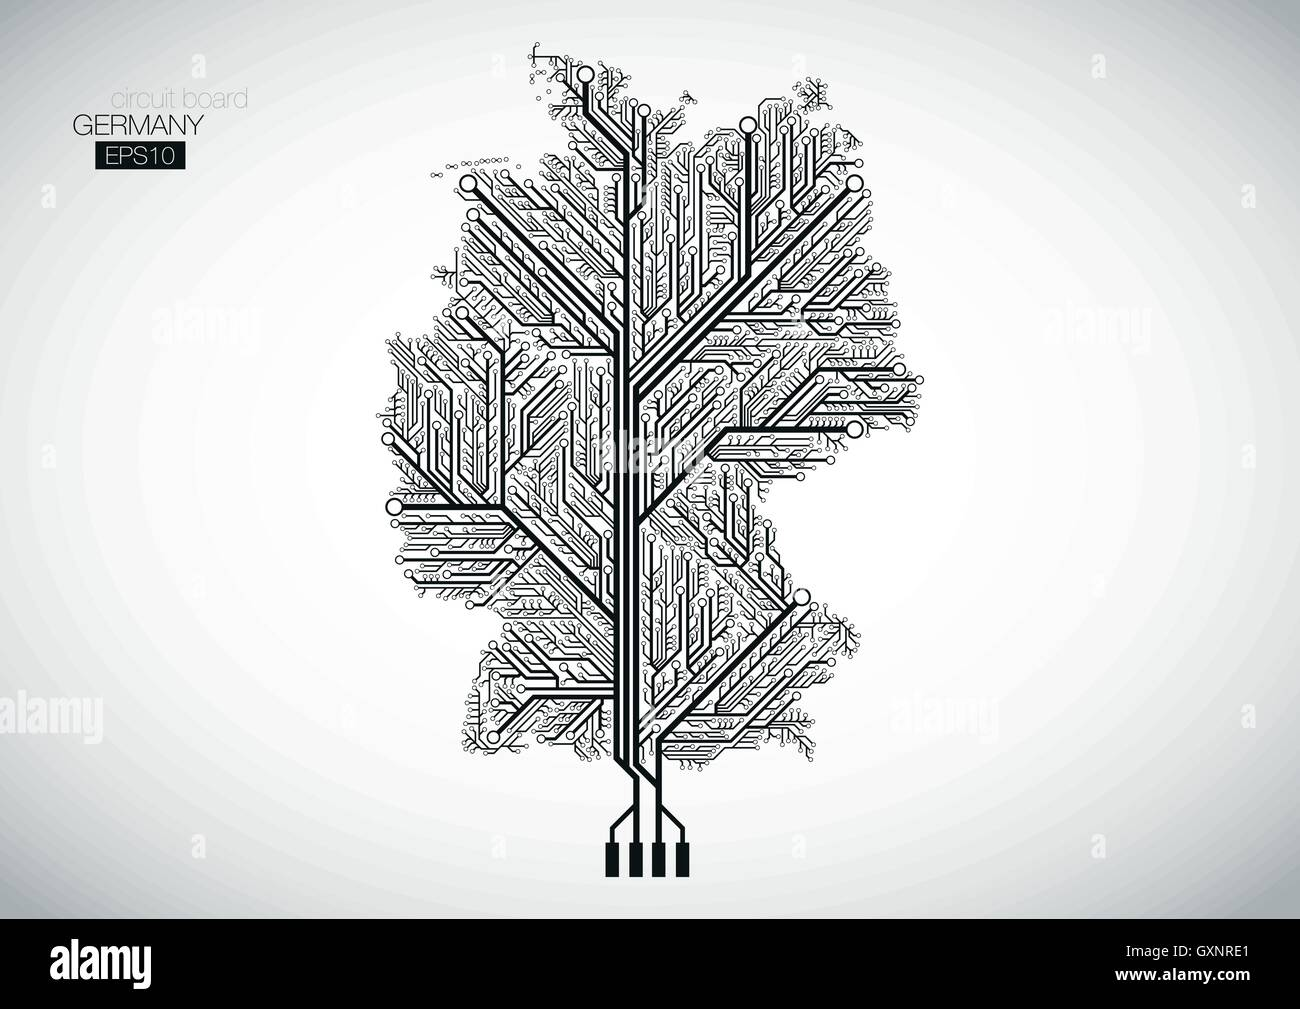 Germany map connected by Circuit board lines Stock Vector Art ...